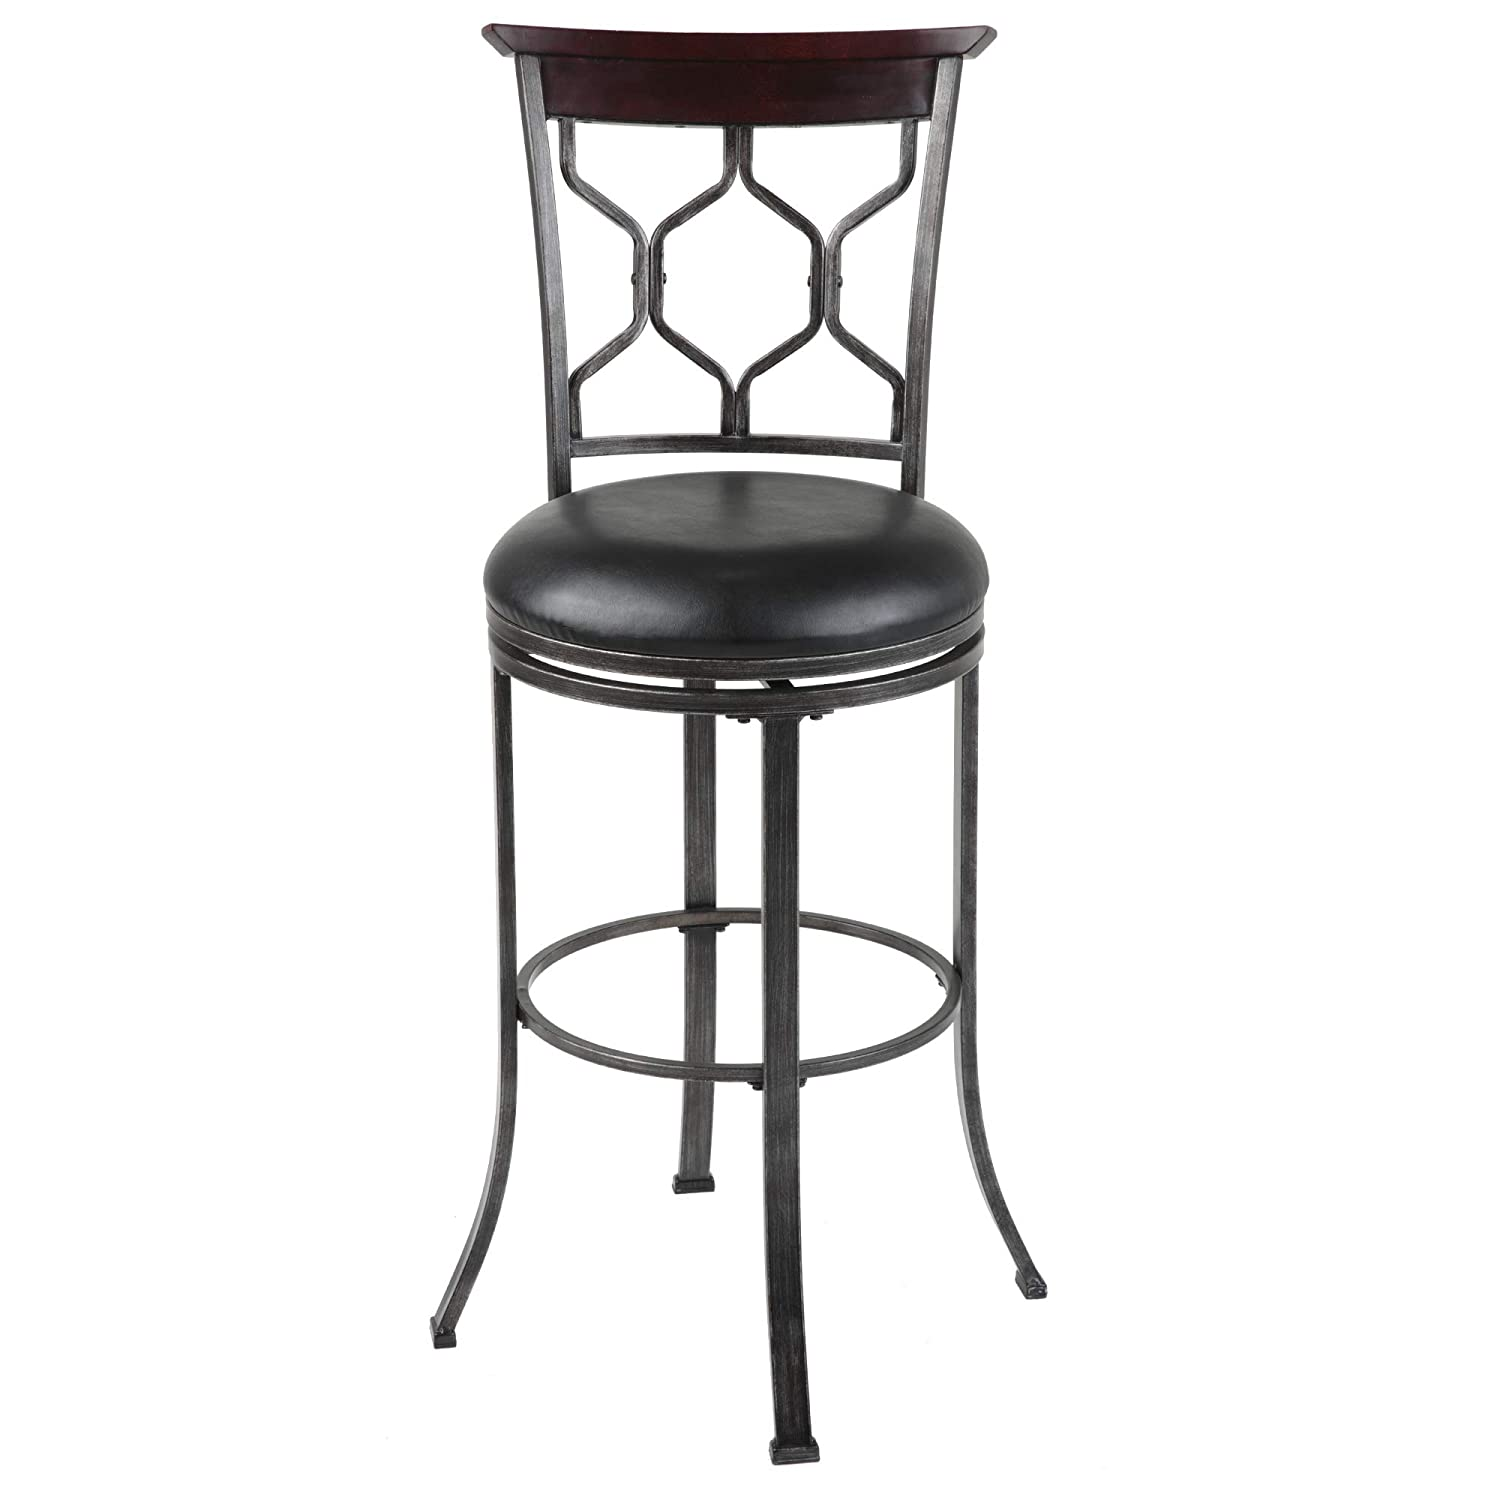 Leggett /& Platt Honolulu Swivel Seat Bar Stool with Coffee Finished Metal Frame 30-Inch Seat Height Sculpted Legs and Black Faux Leather Upholstery